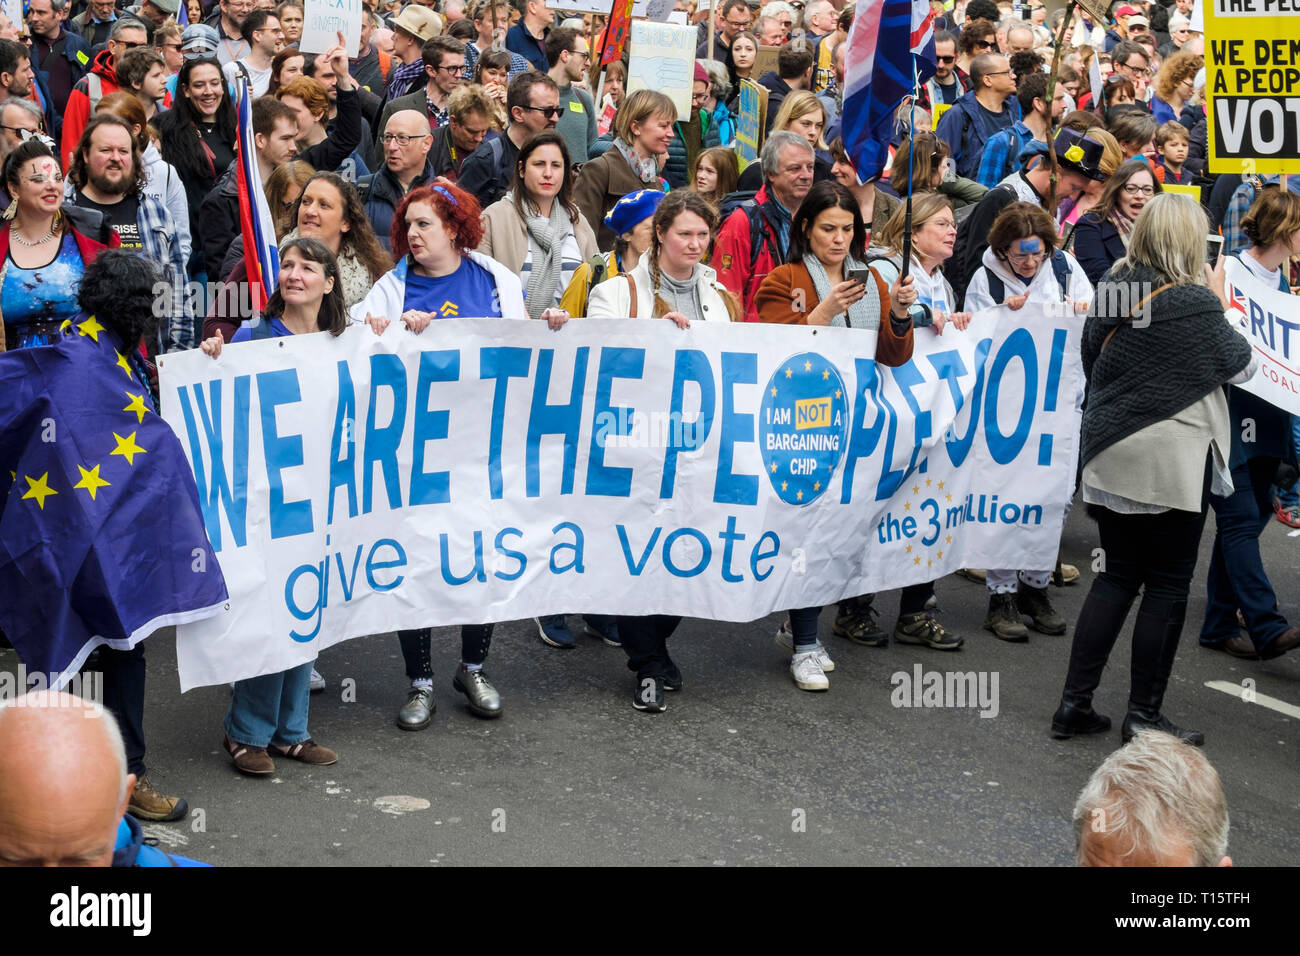 London, UK. 23rd March 2019. Hundreds of thousands of people march through central London demanding a second vote on the UK's membership of the European Union. Credit: mark phillips/Alamy Live News - Stock Image